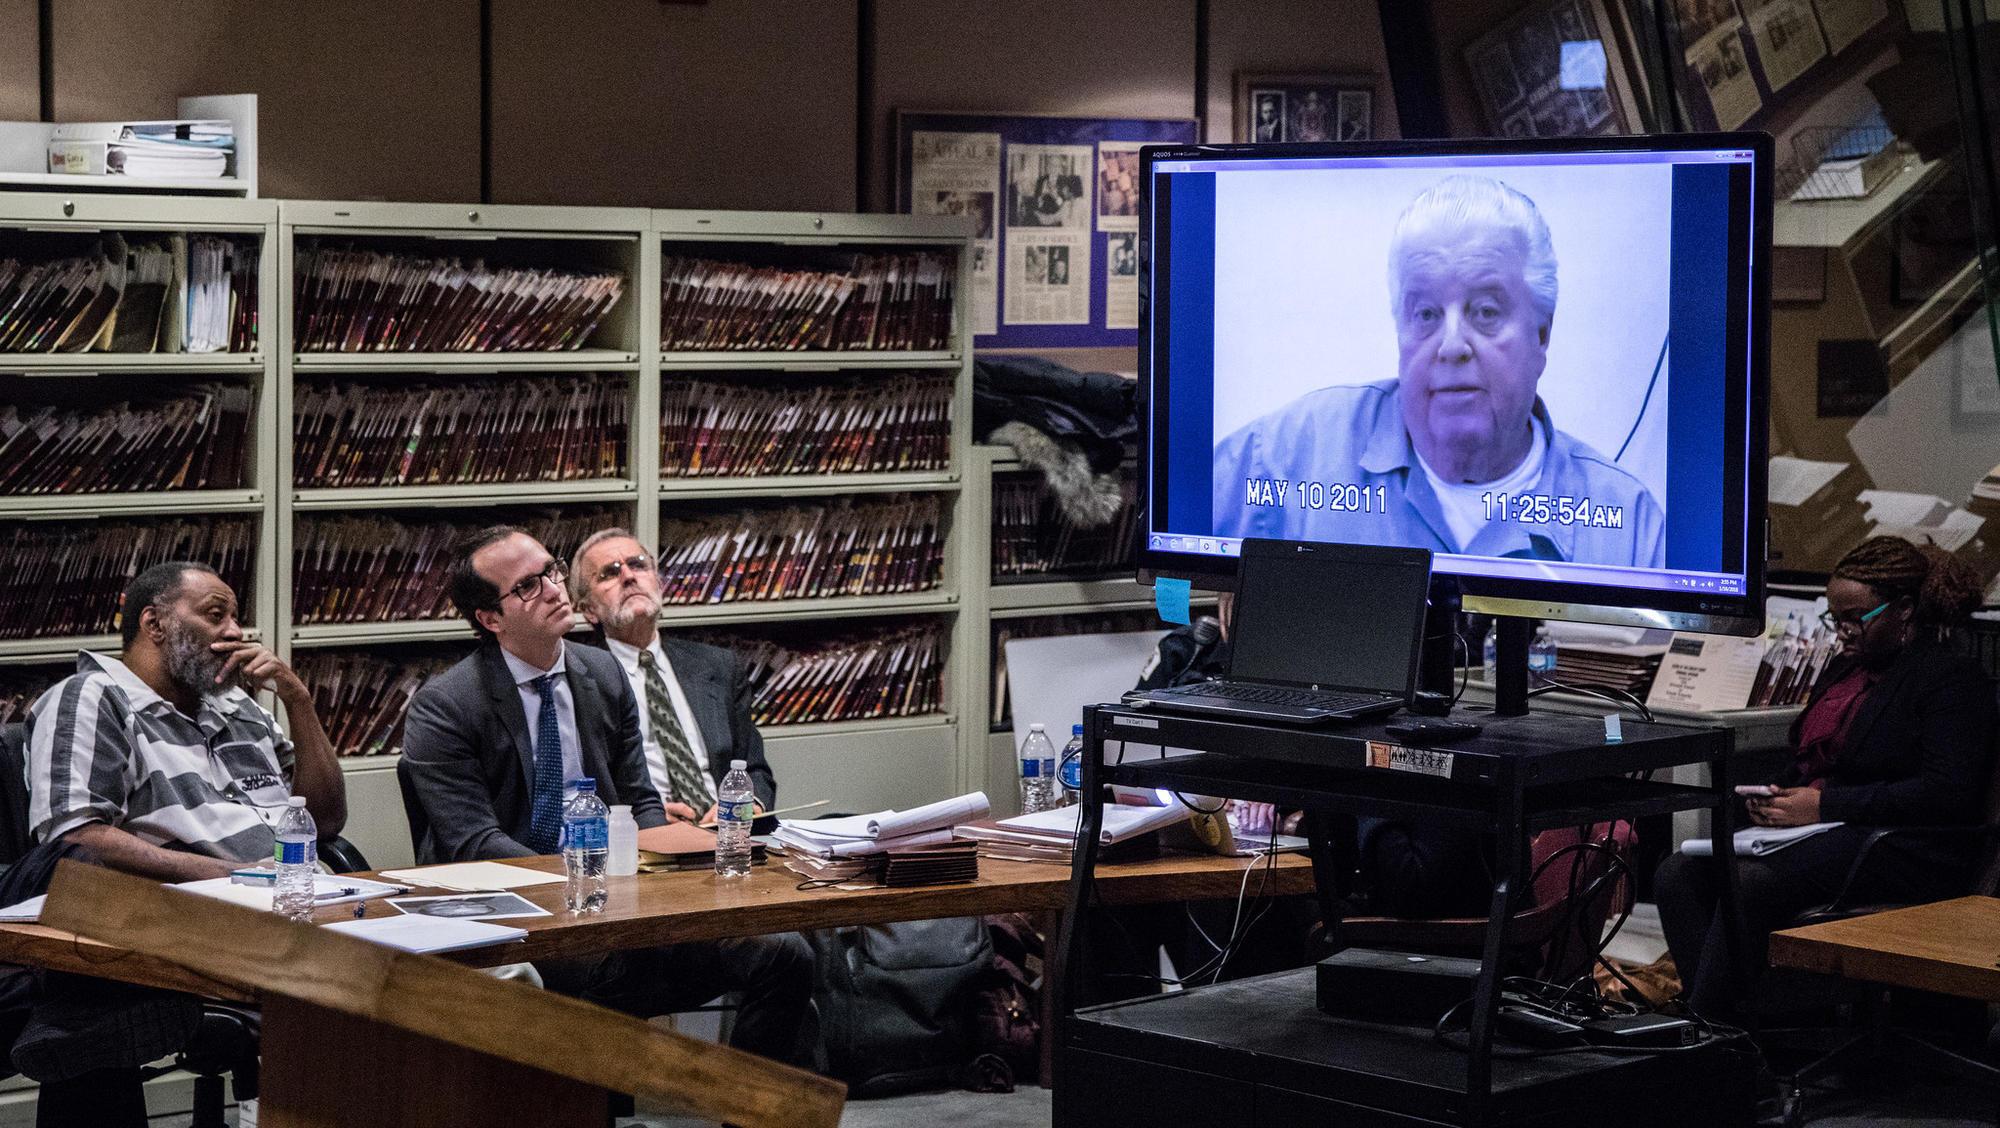 Video played in court shows Jon Burge taking 5th in alleged torture case